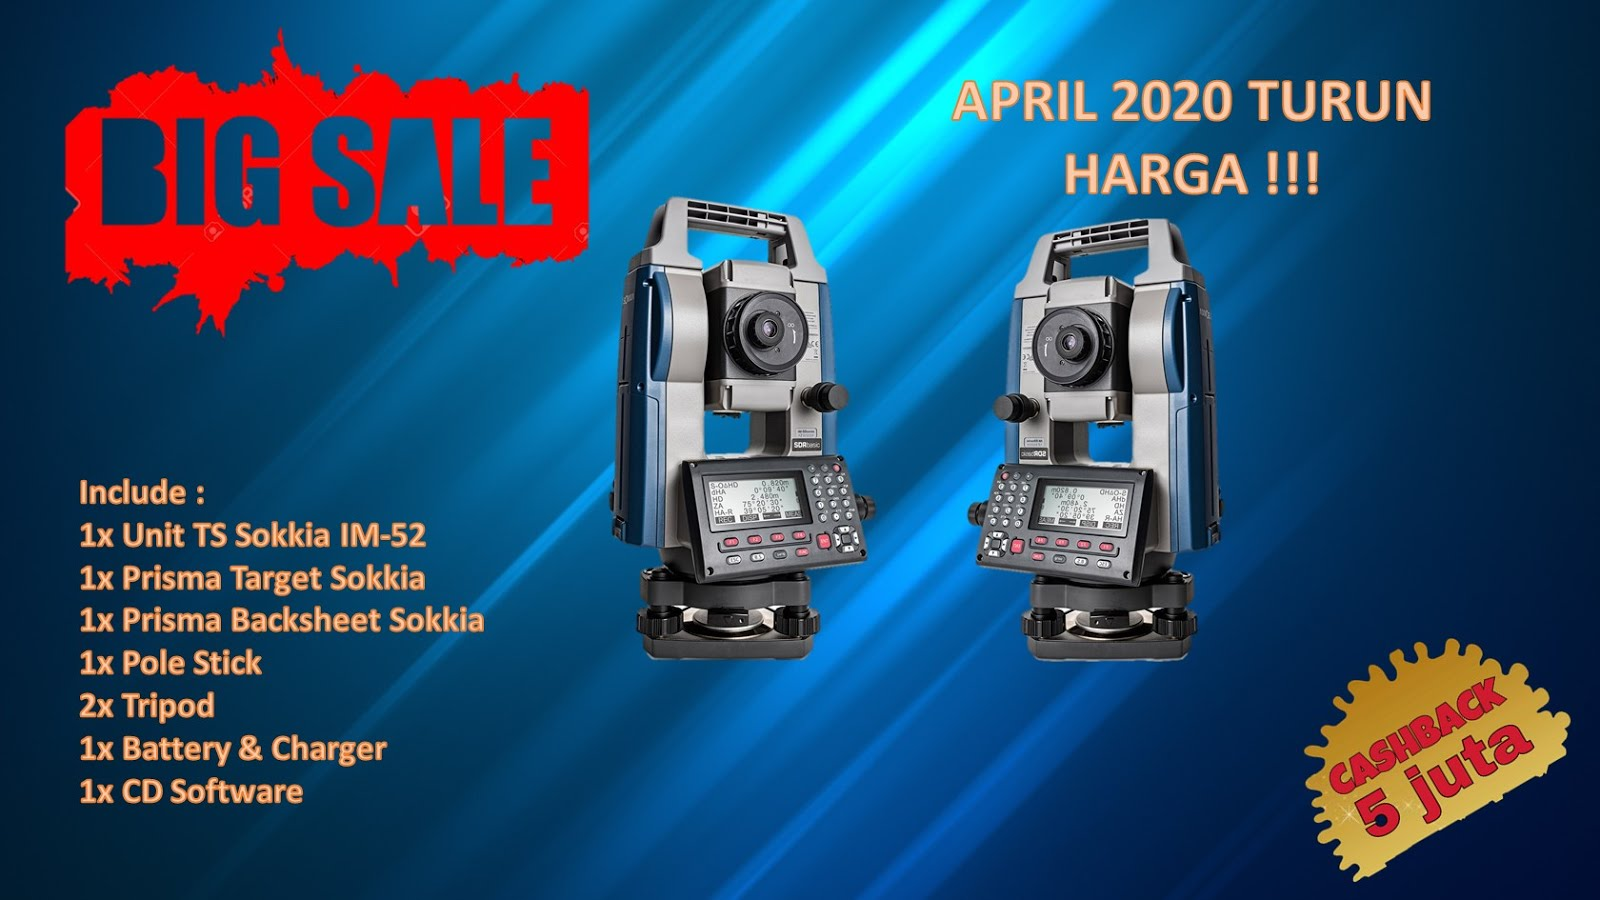 PROMO RAMADHAN 1441H./APRIL 2020M.